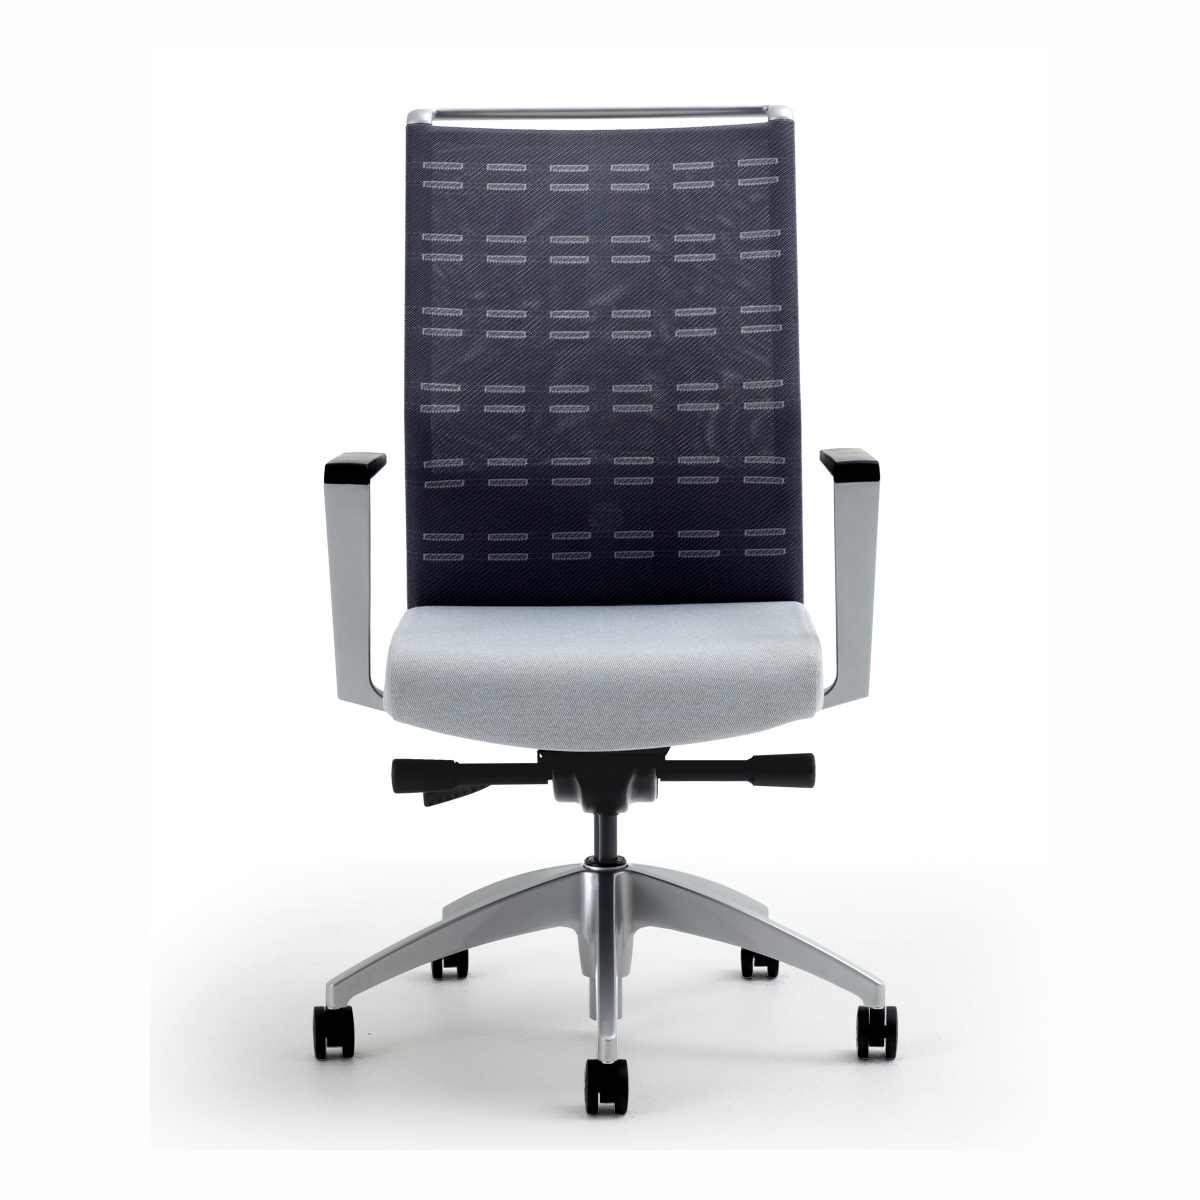 Sit On It Chairs Sona Task Chair By Sit On It Office Furniture Ethosource